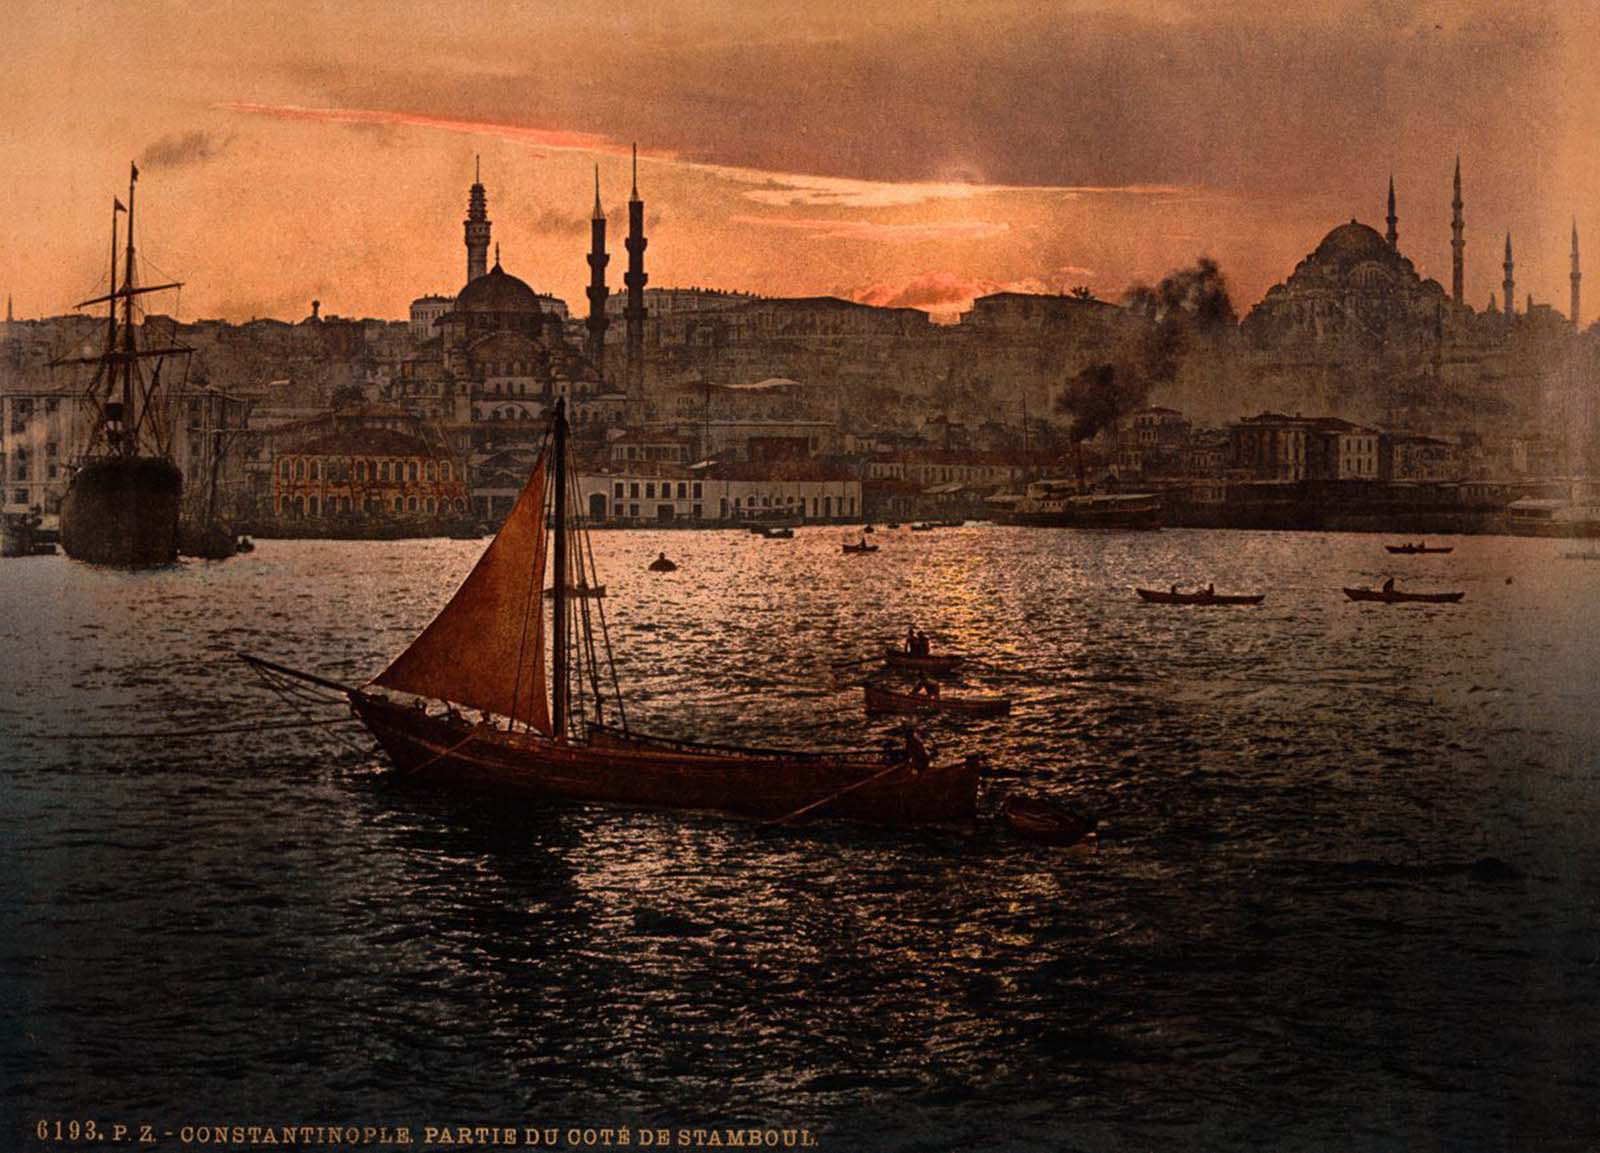 The harbor of Constantinople.